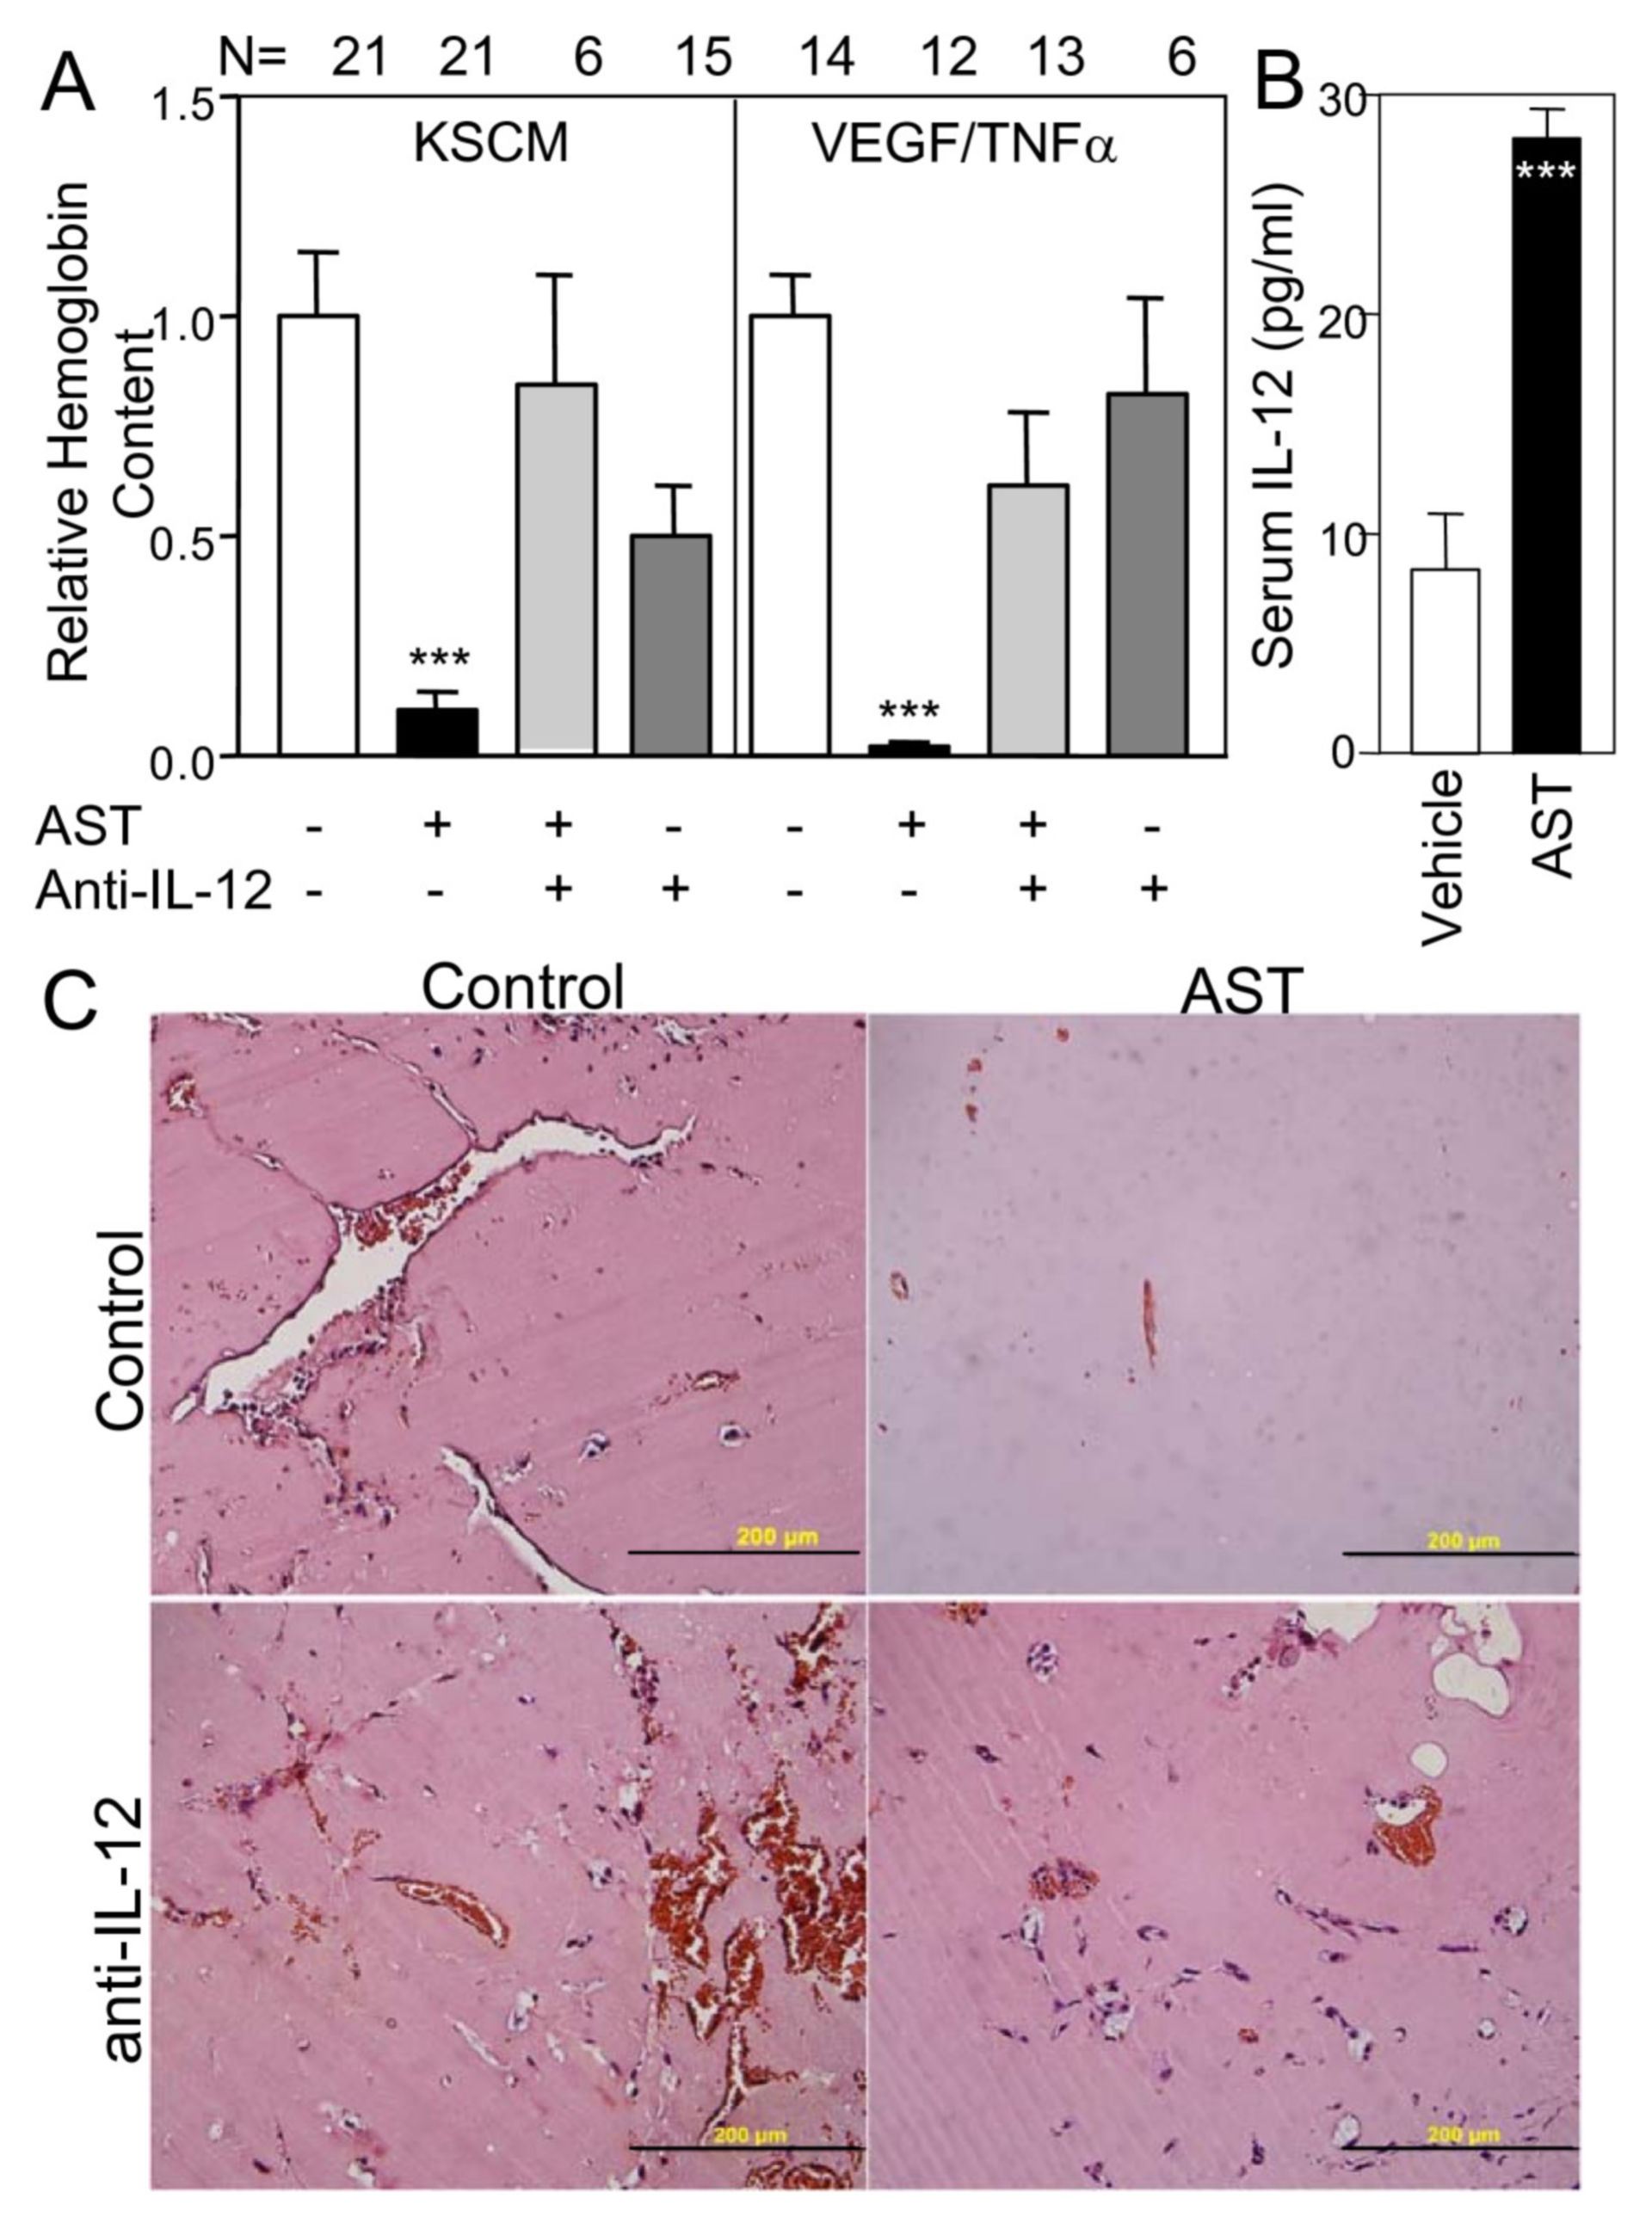 Reversion of angiostatin angiogenesis inhibition by function blocking antibodies to IL-12